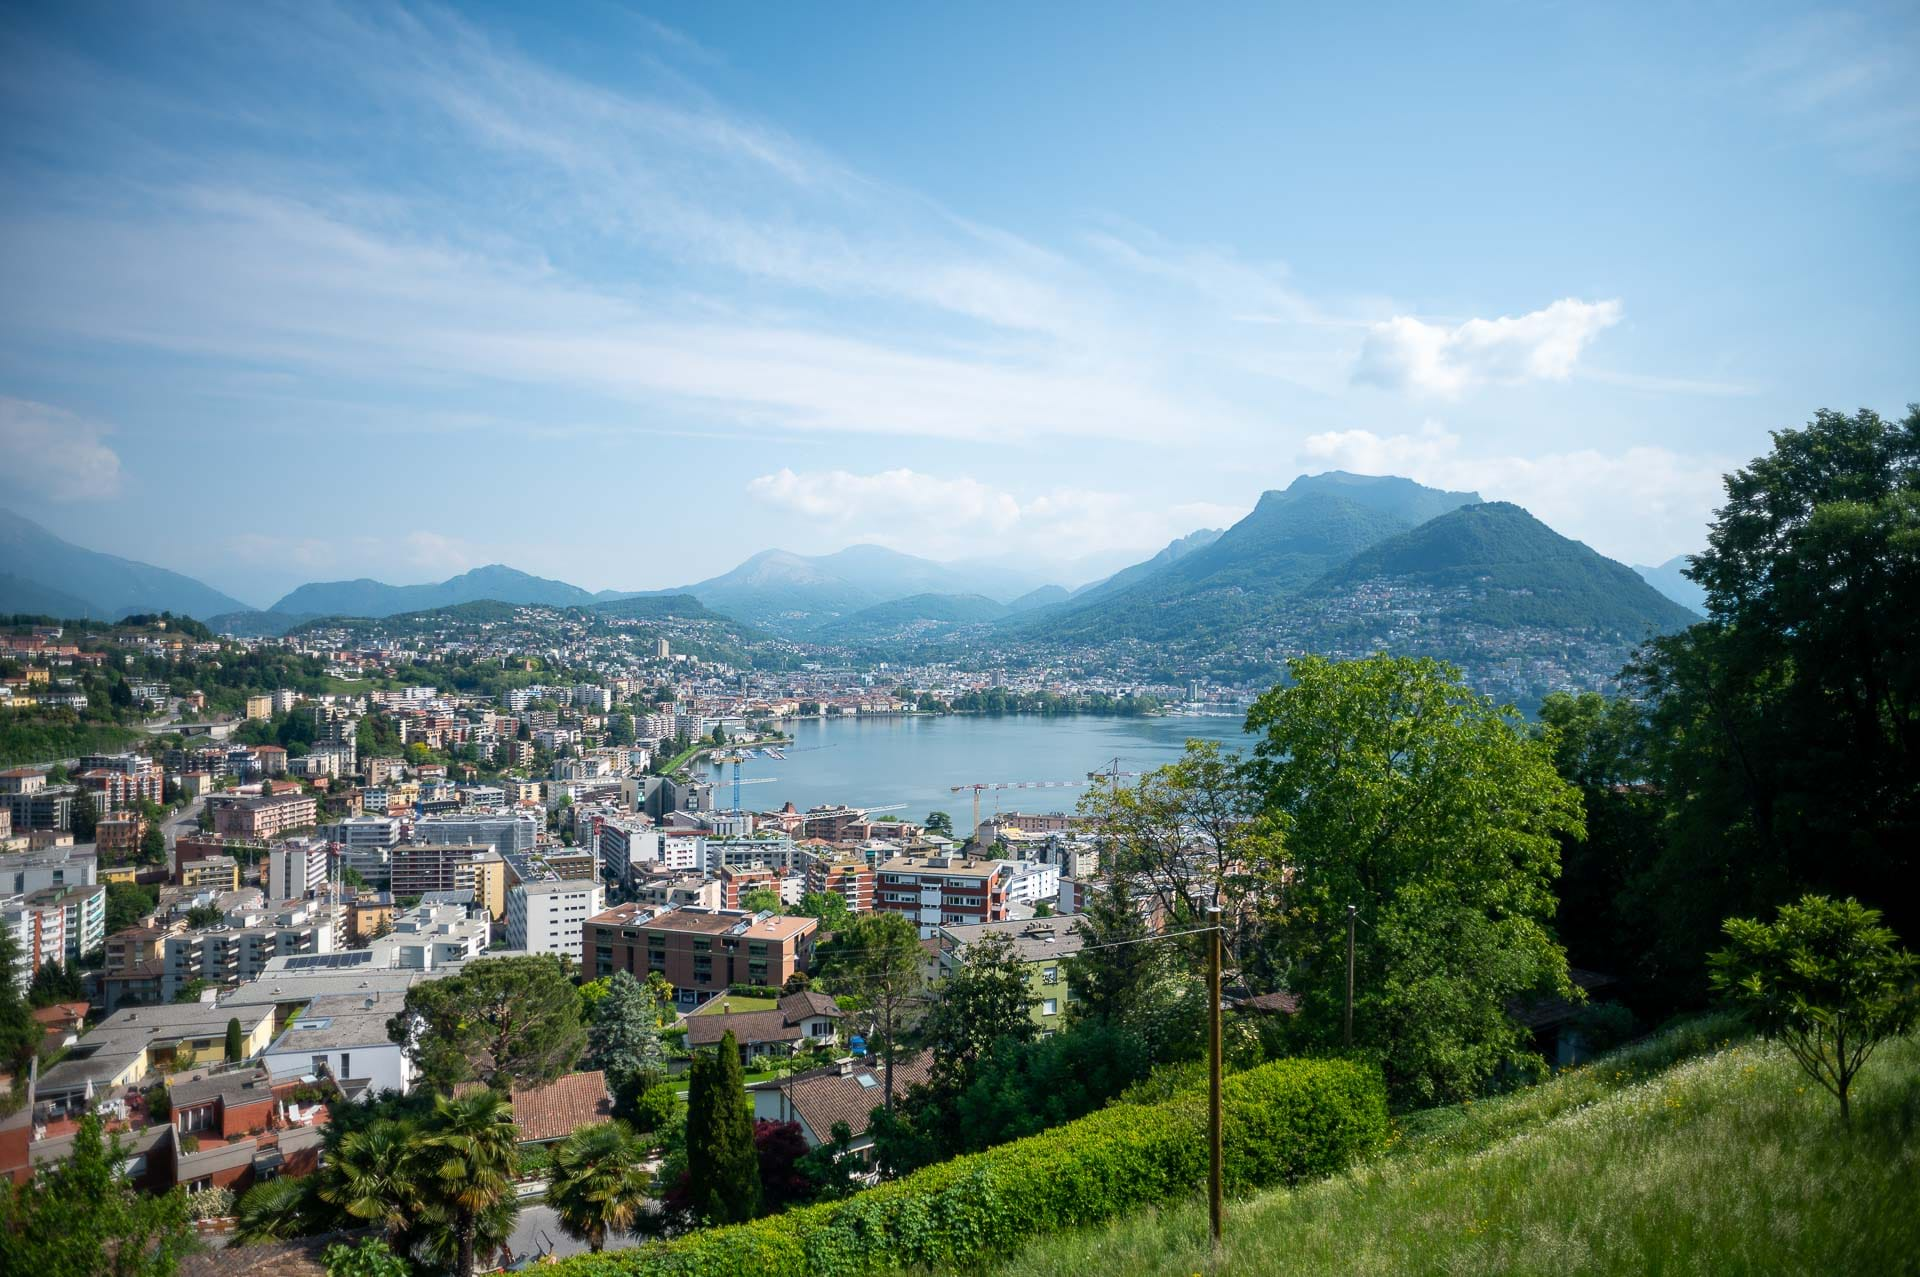 Hotel_Slideshow_Bigatt_Hotel_and_Restaurant_Lugano_01.jpg